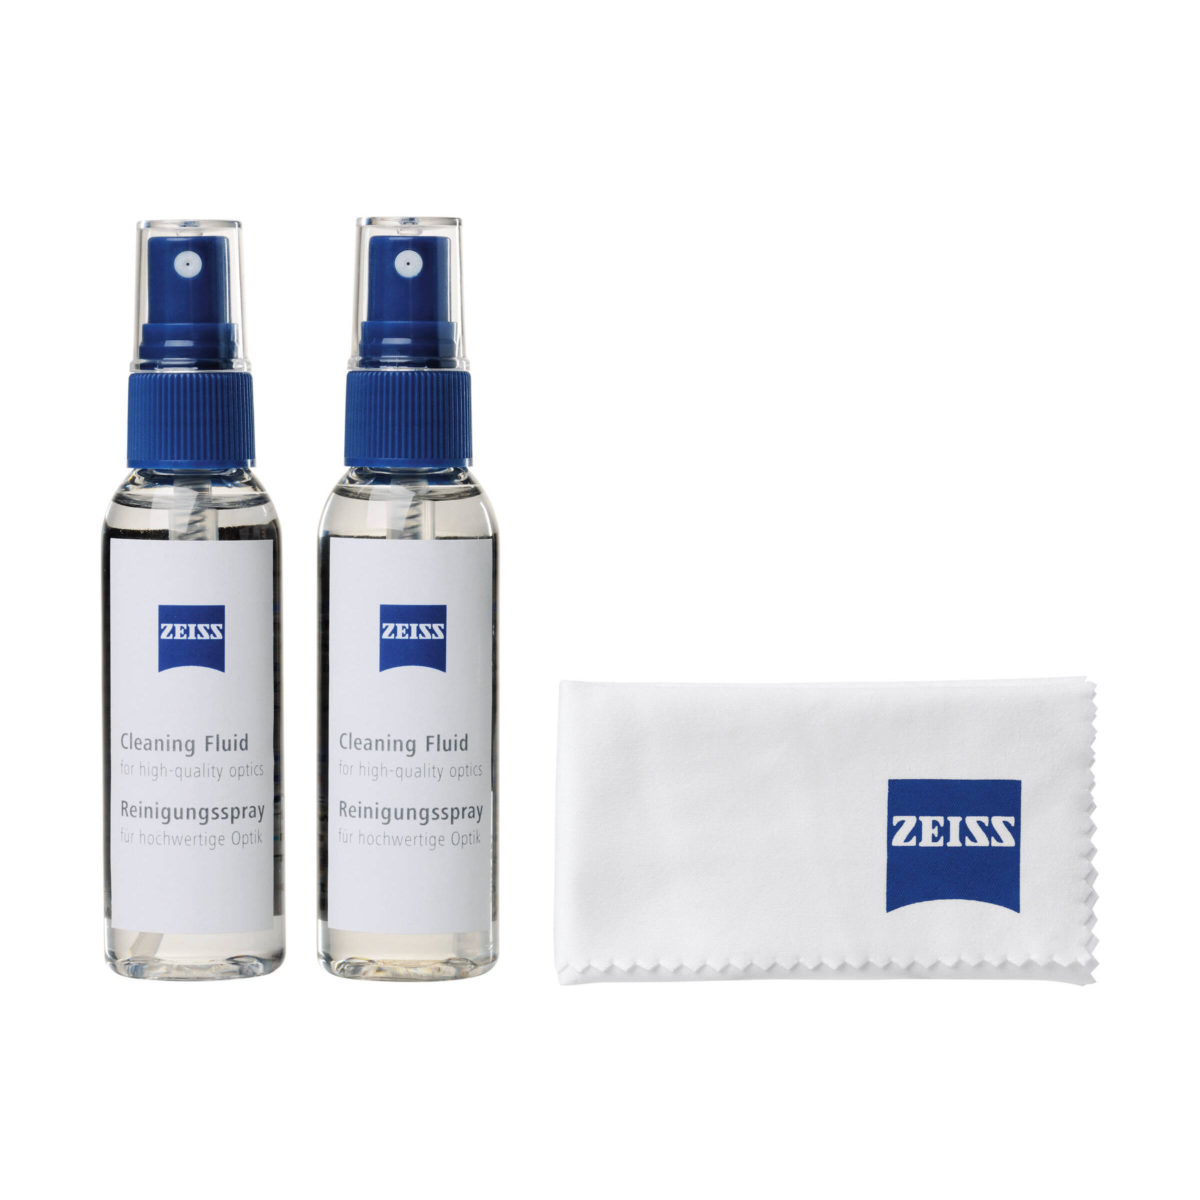 zeiss_cleaning_fluid_01